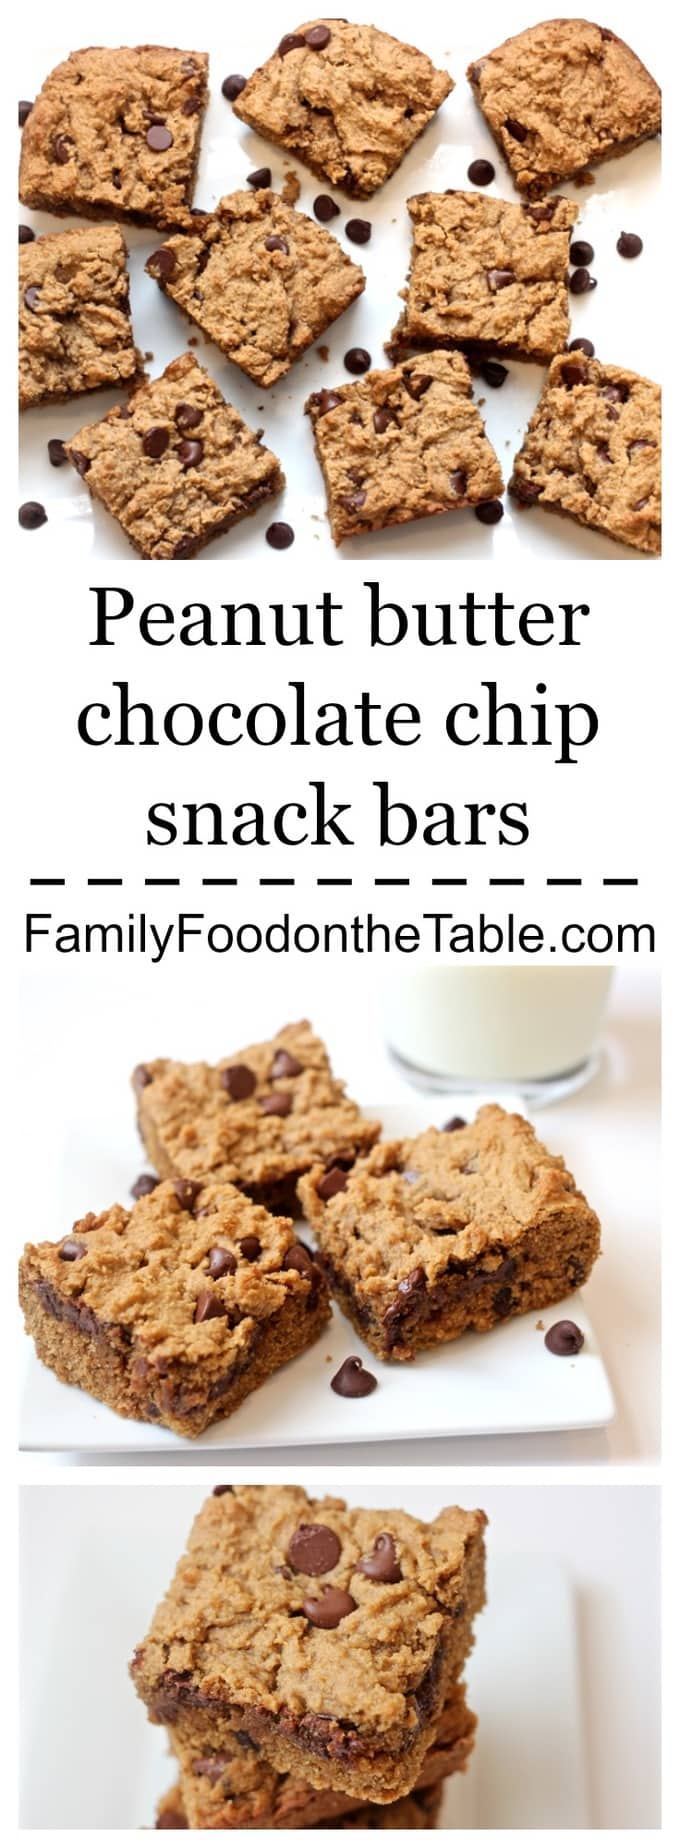 Peanut butter chocolate chips snack bars are whole grain and delicious ...